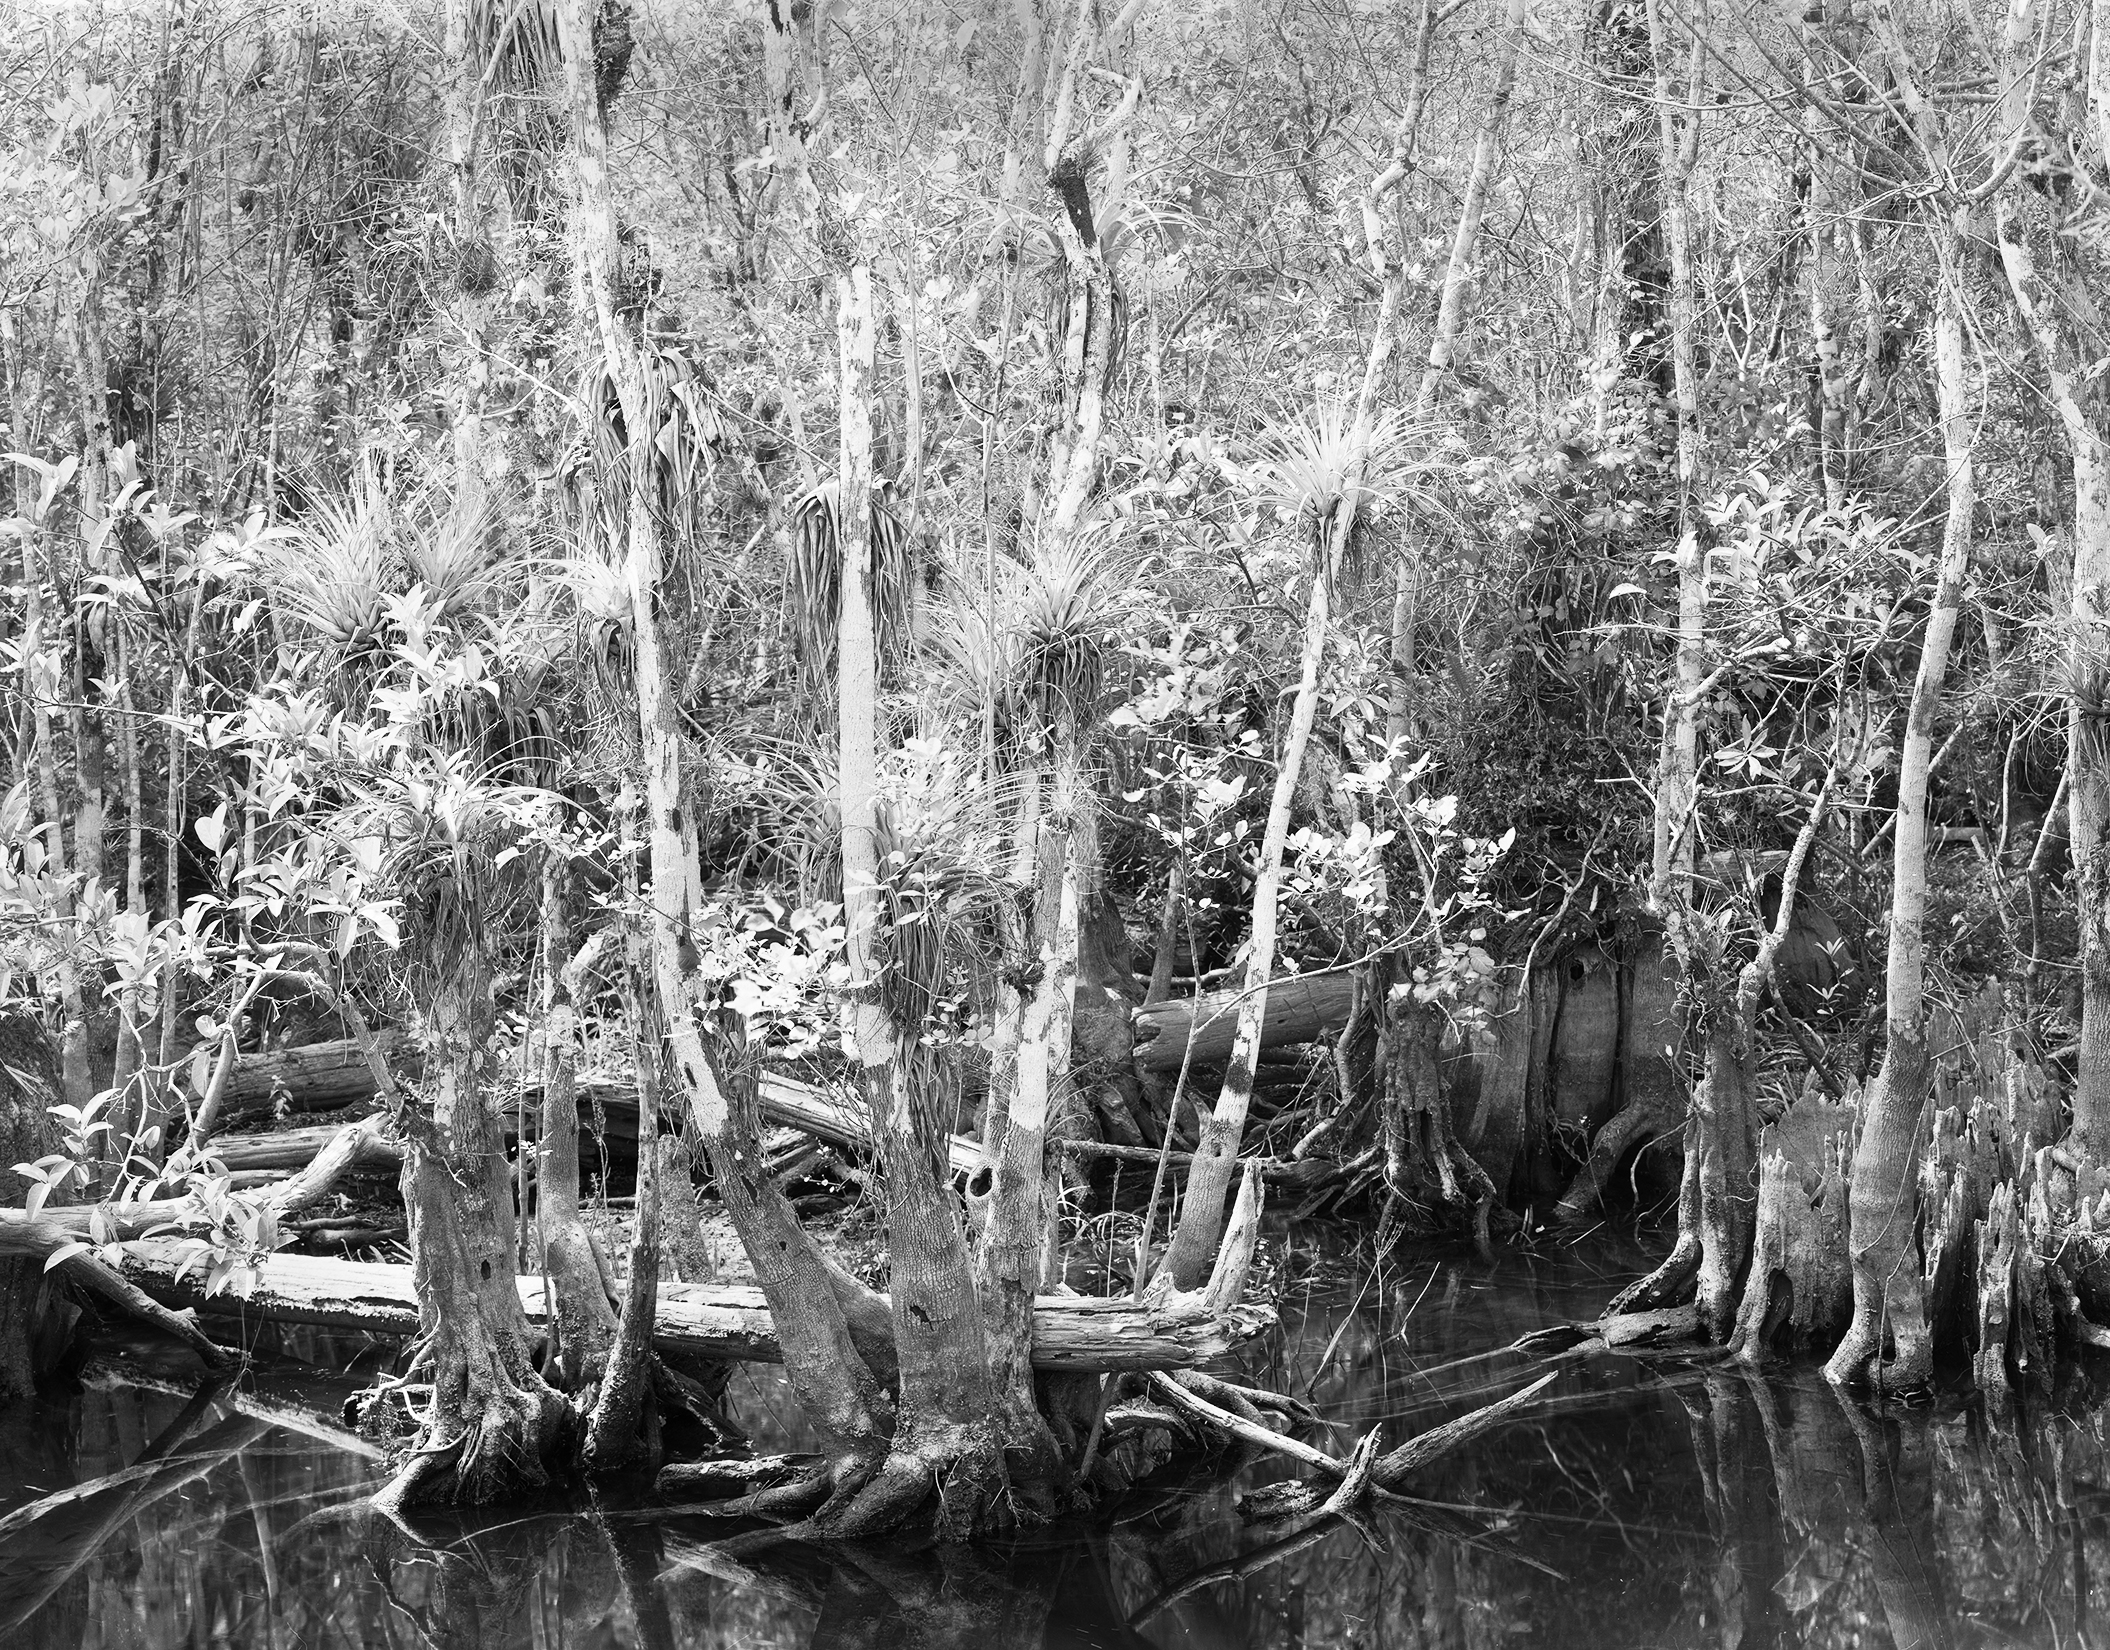 Trees and Airplants, Big Cypress